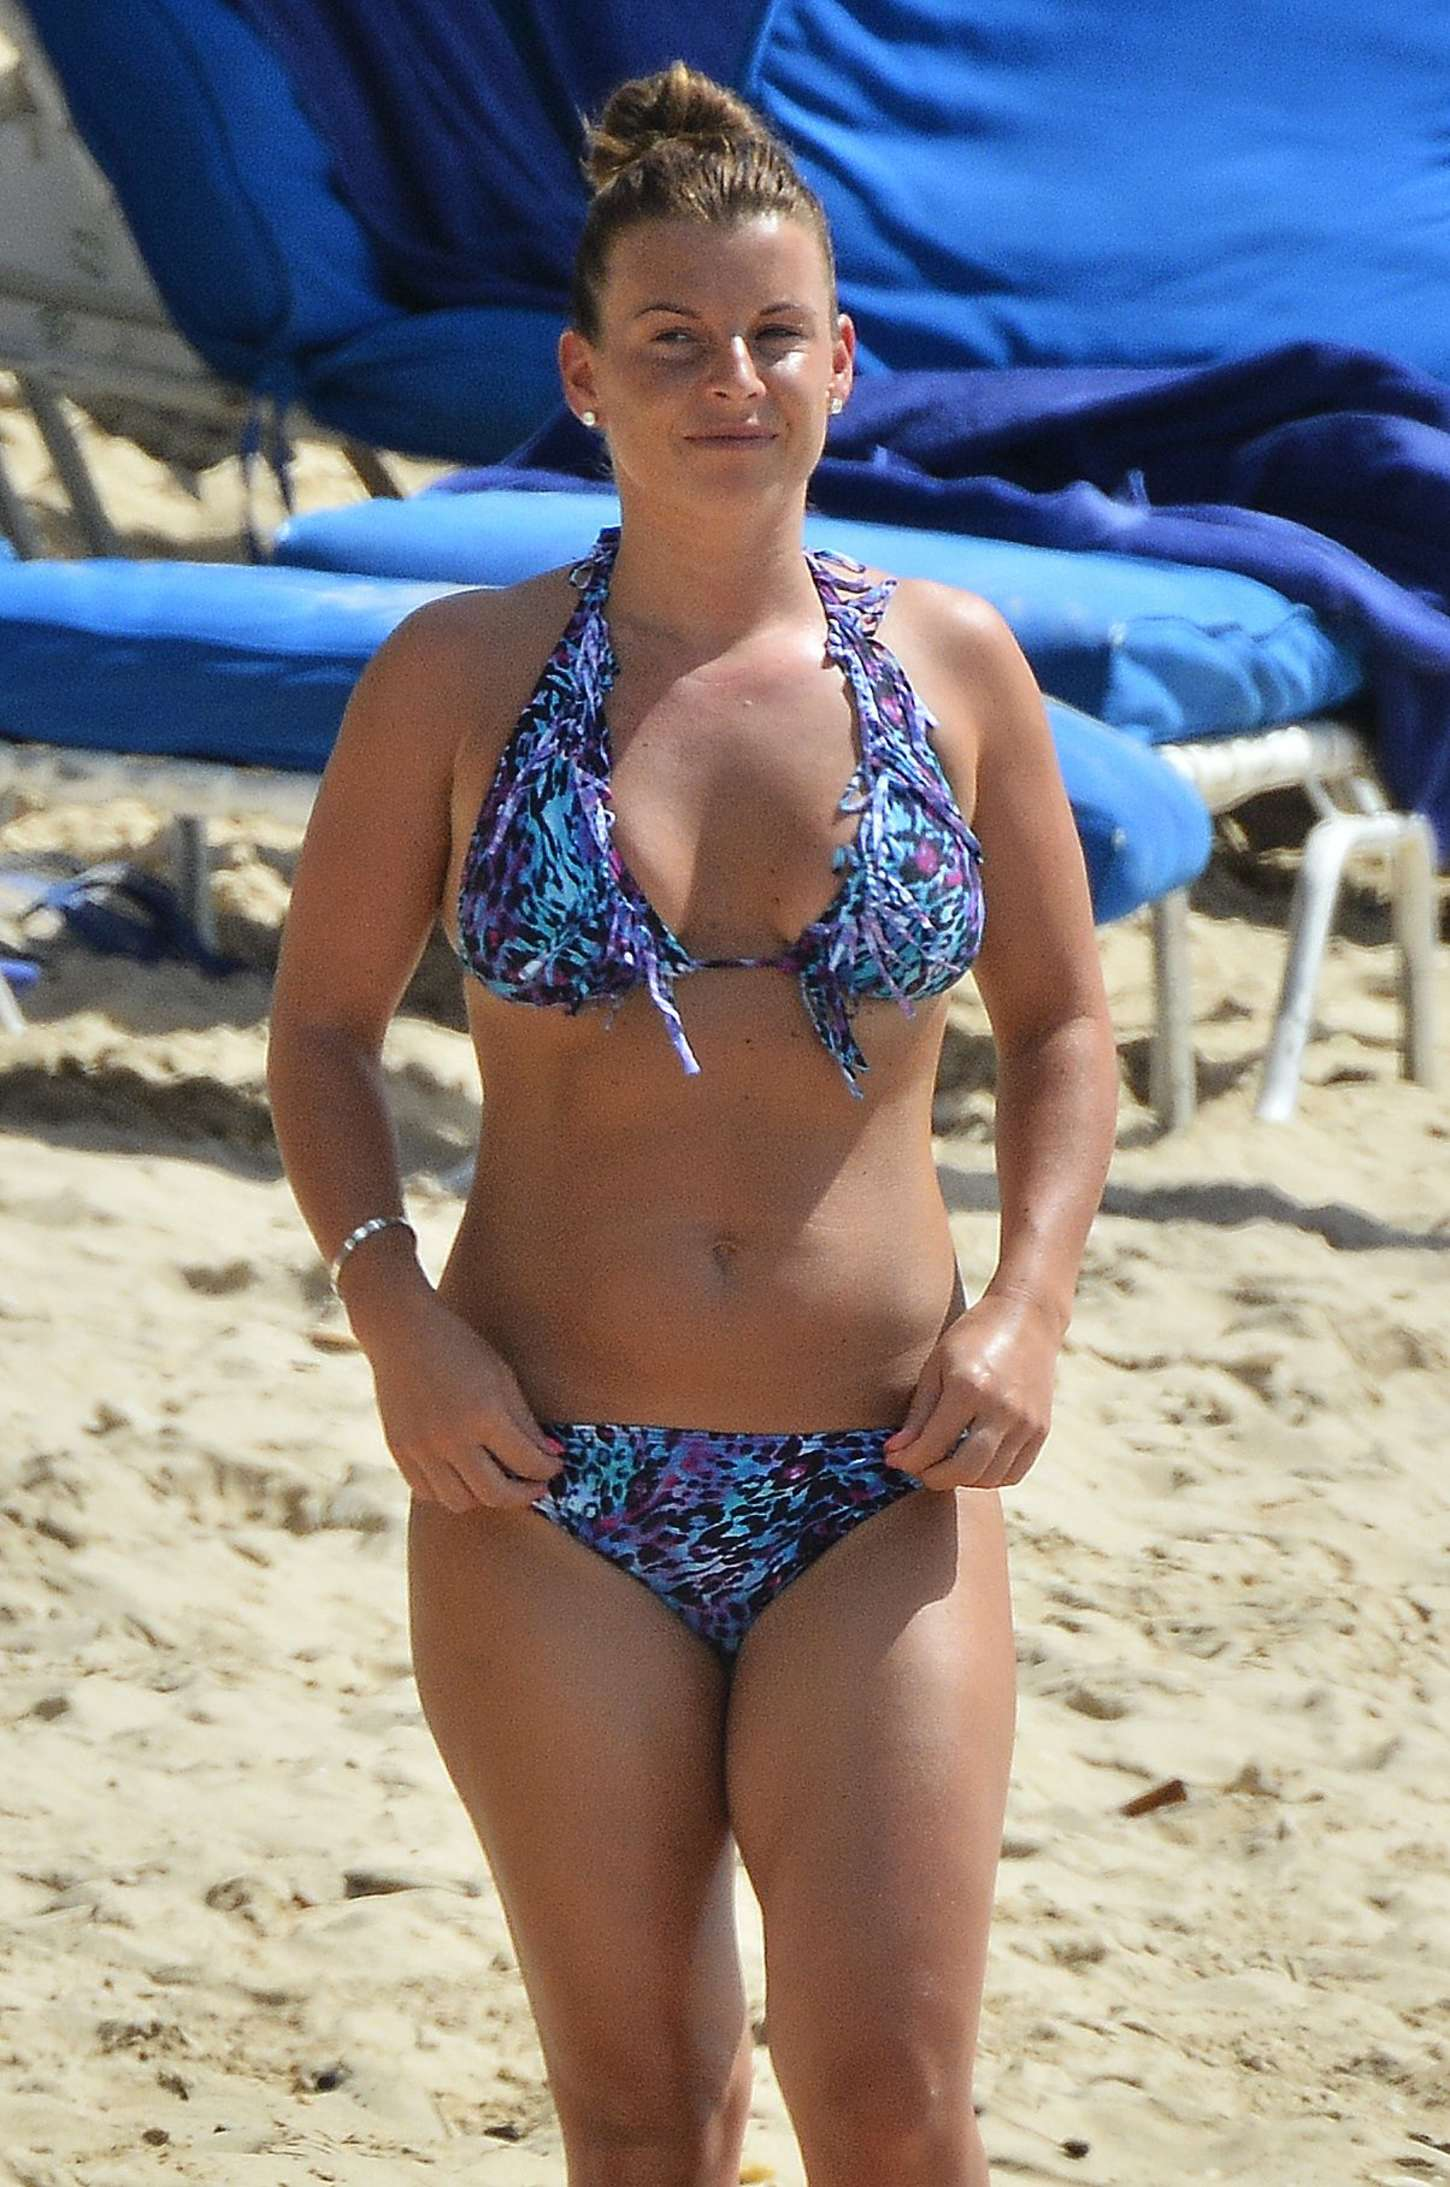 Pictures Of Kai Rooney, Coleen Rooney In A Green Bikini And Shirtless Wayne Rooney In Barbados On Holiday